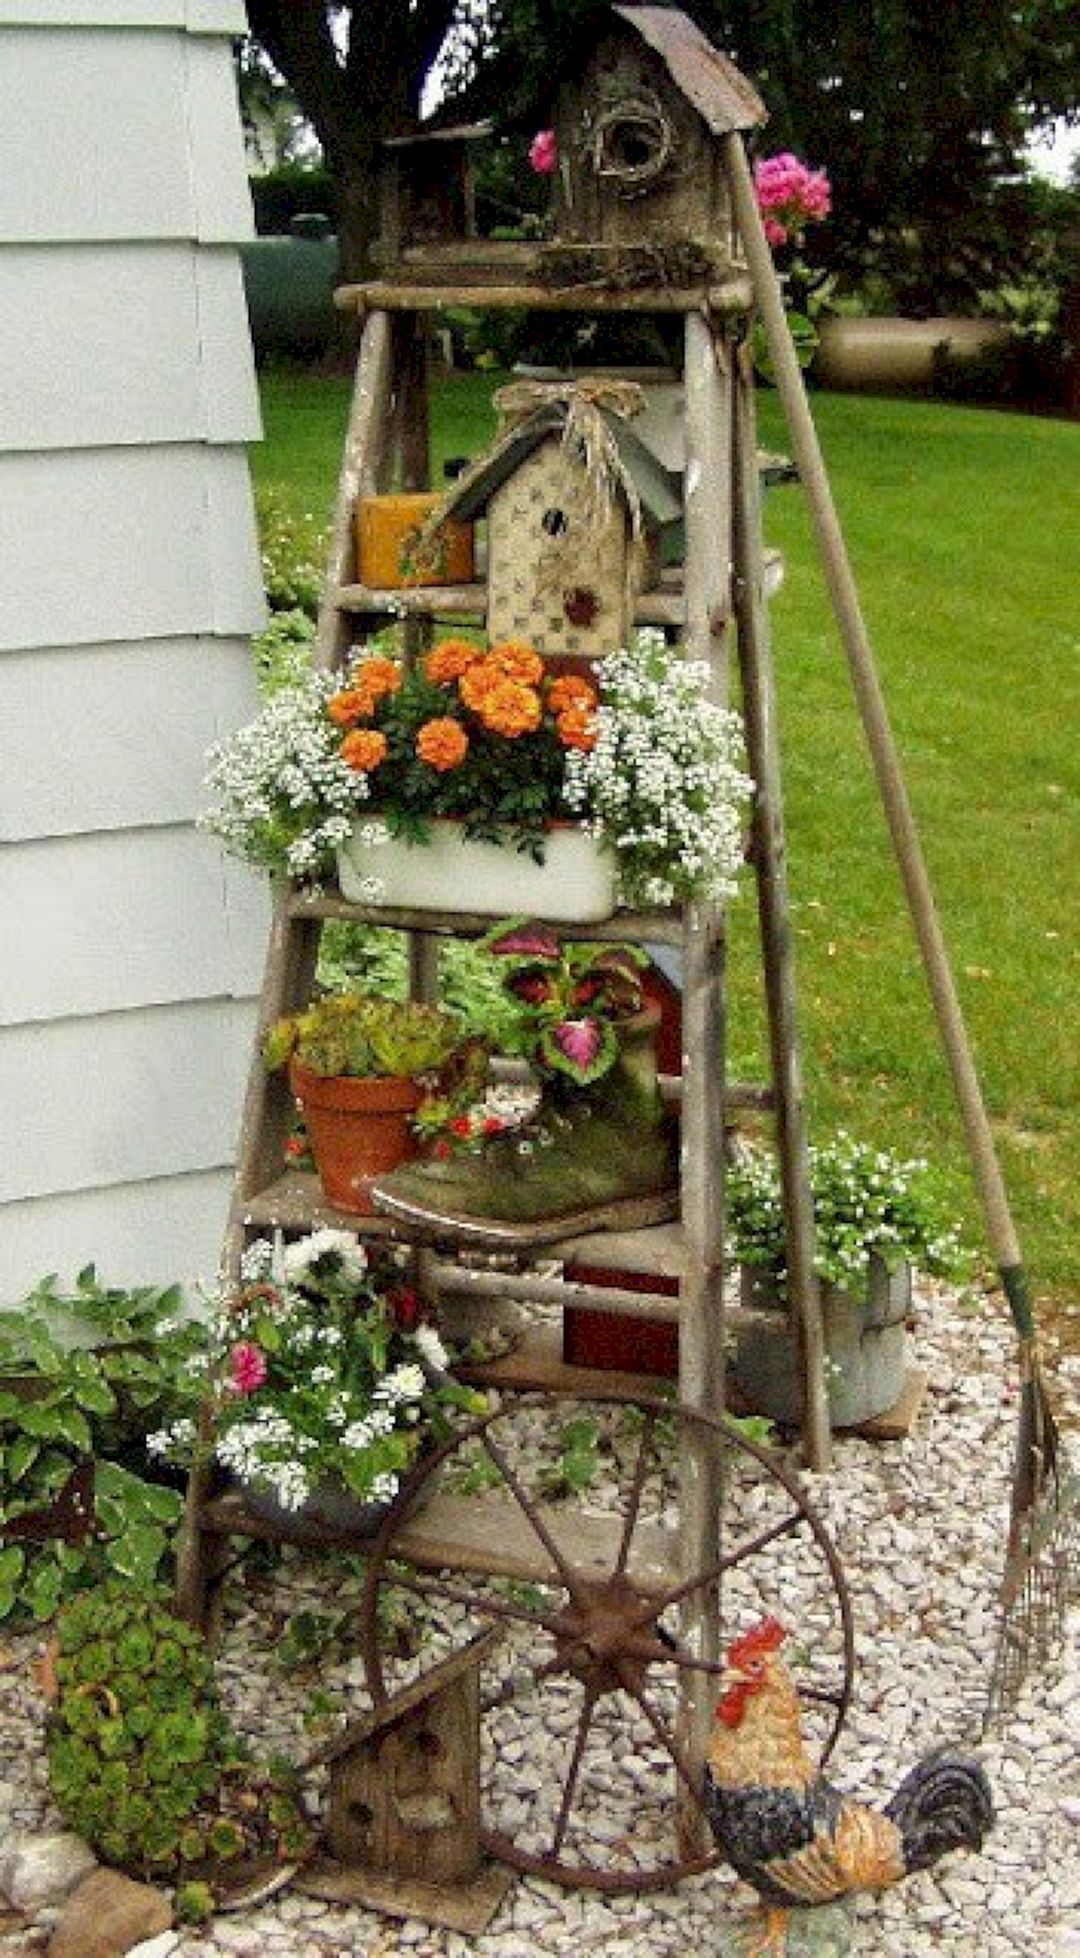 Build Flower Stand Yourself   Use Old Wooden Ladder As Flower Ladder   Decor  Ideas For You 2018